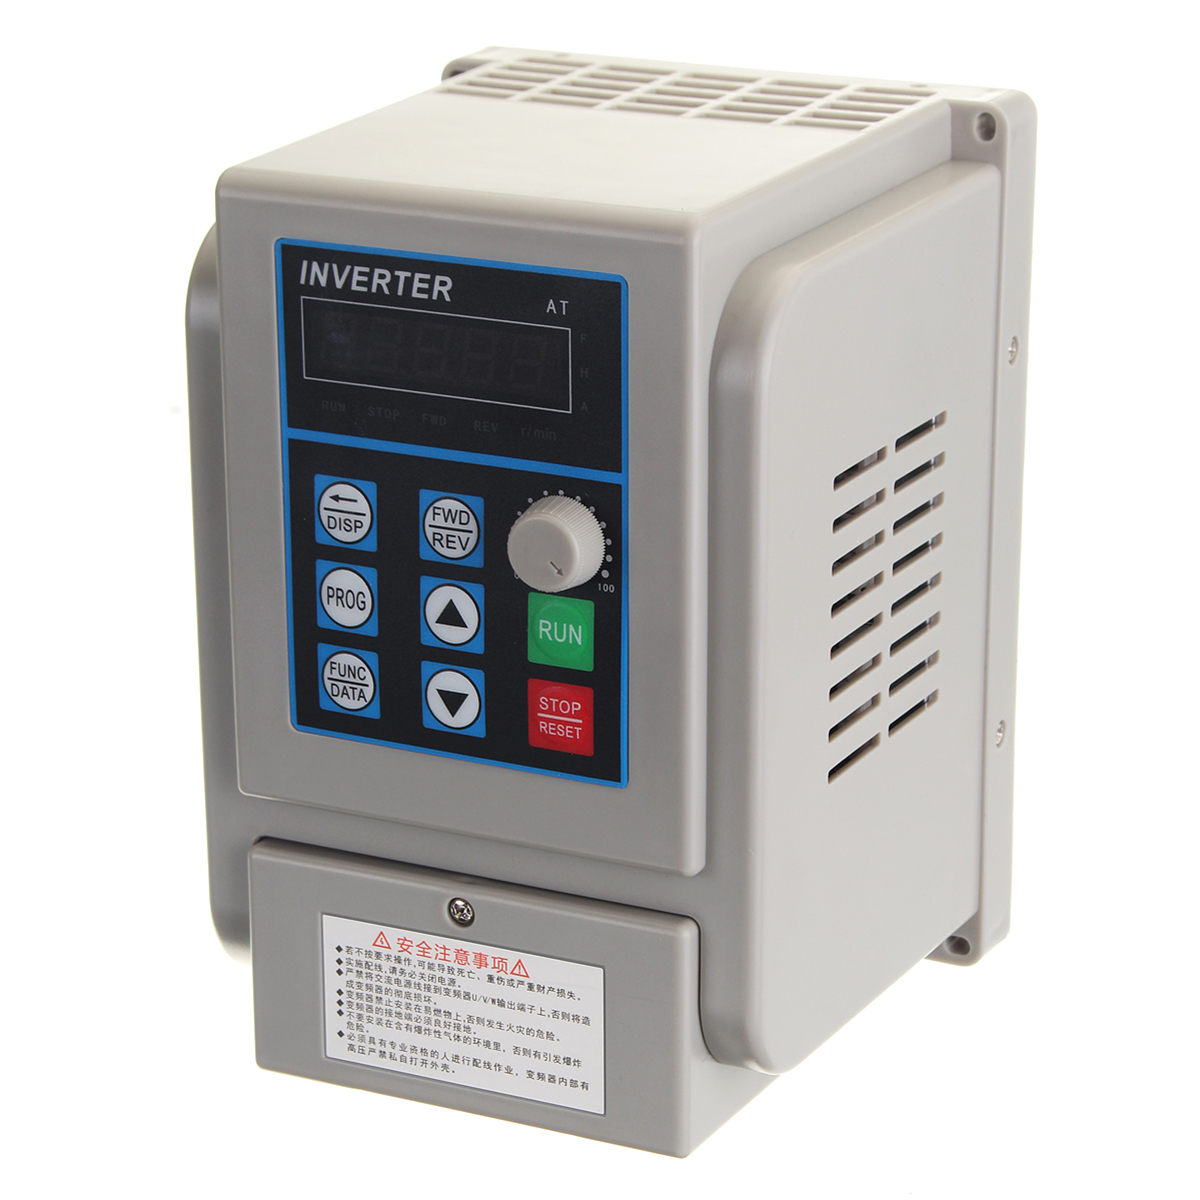 220V 2.2KW Single Phase input and 3 Phase Output Frequency Converter Inverter /CNC Spindle motor speed control/ VFD For Motor